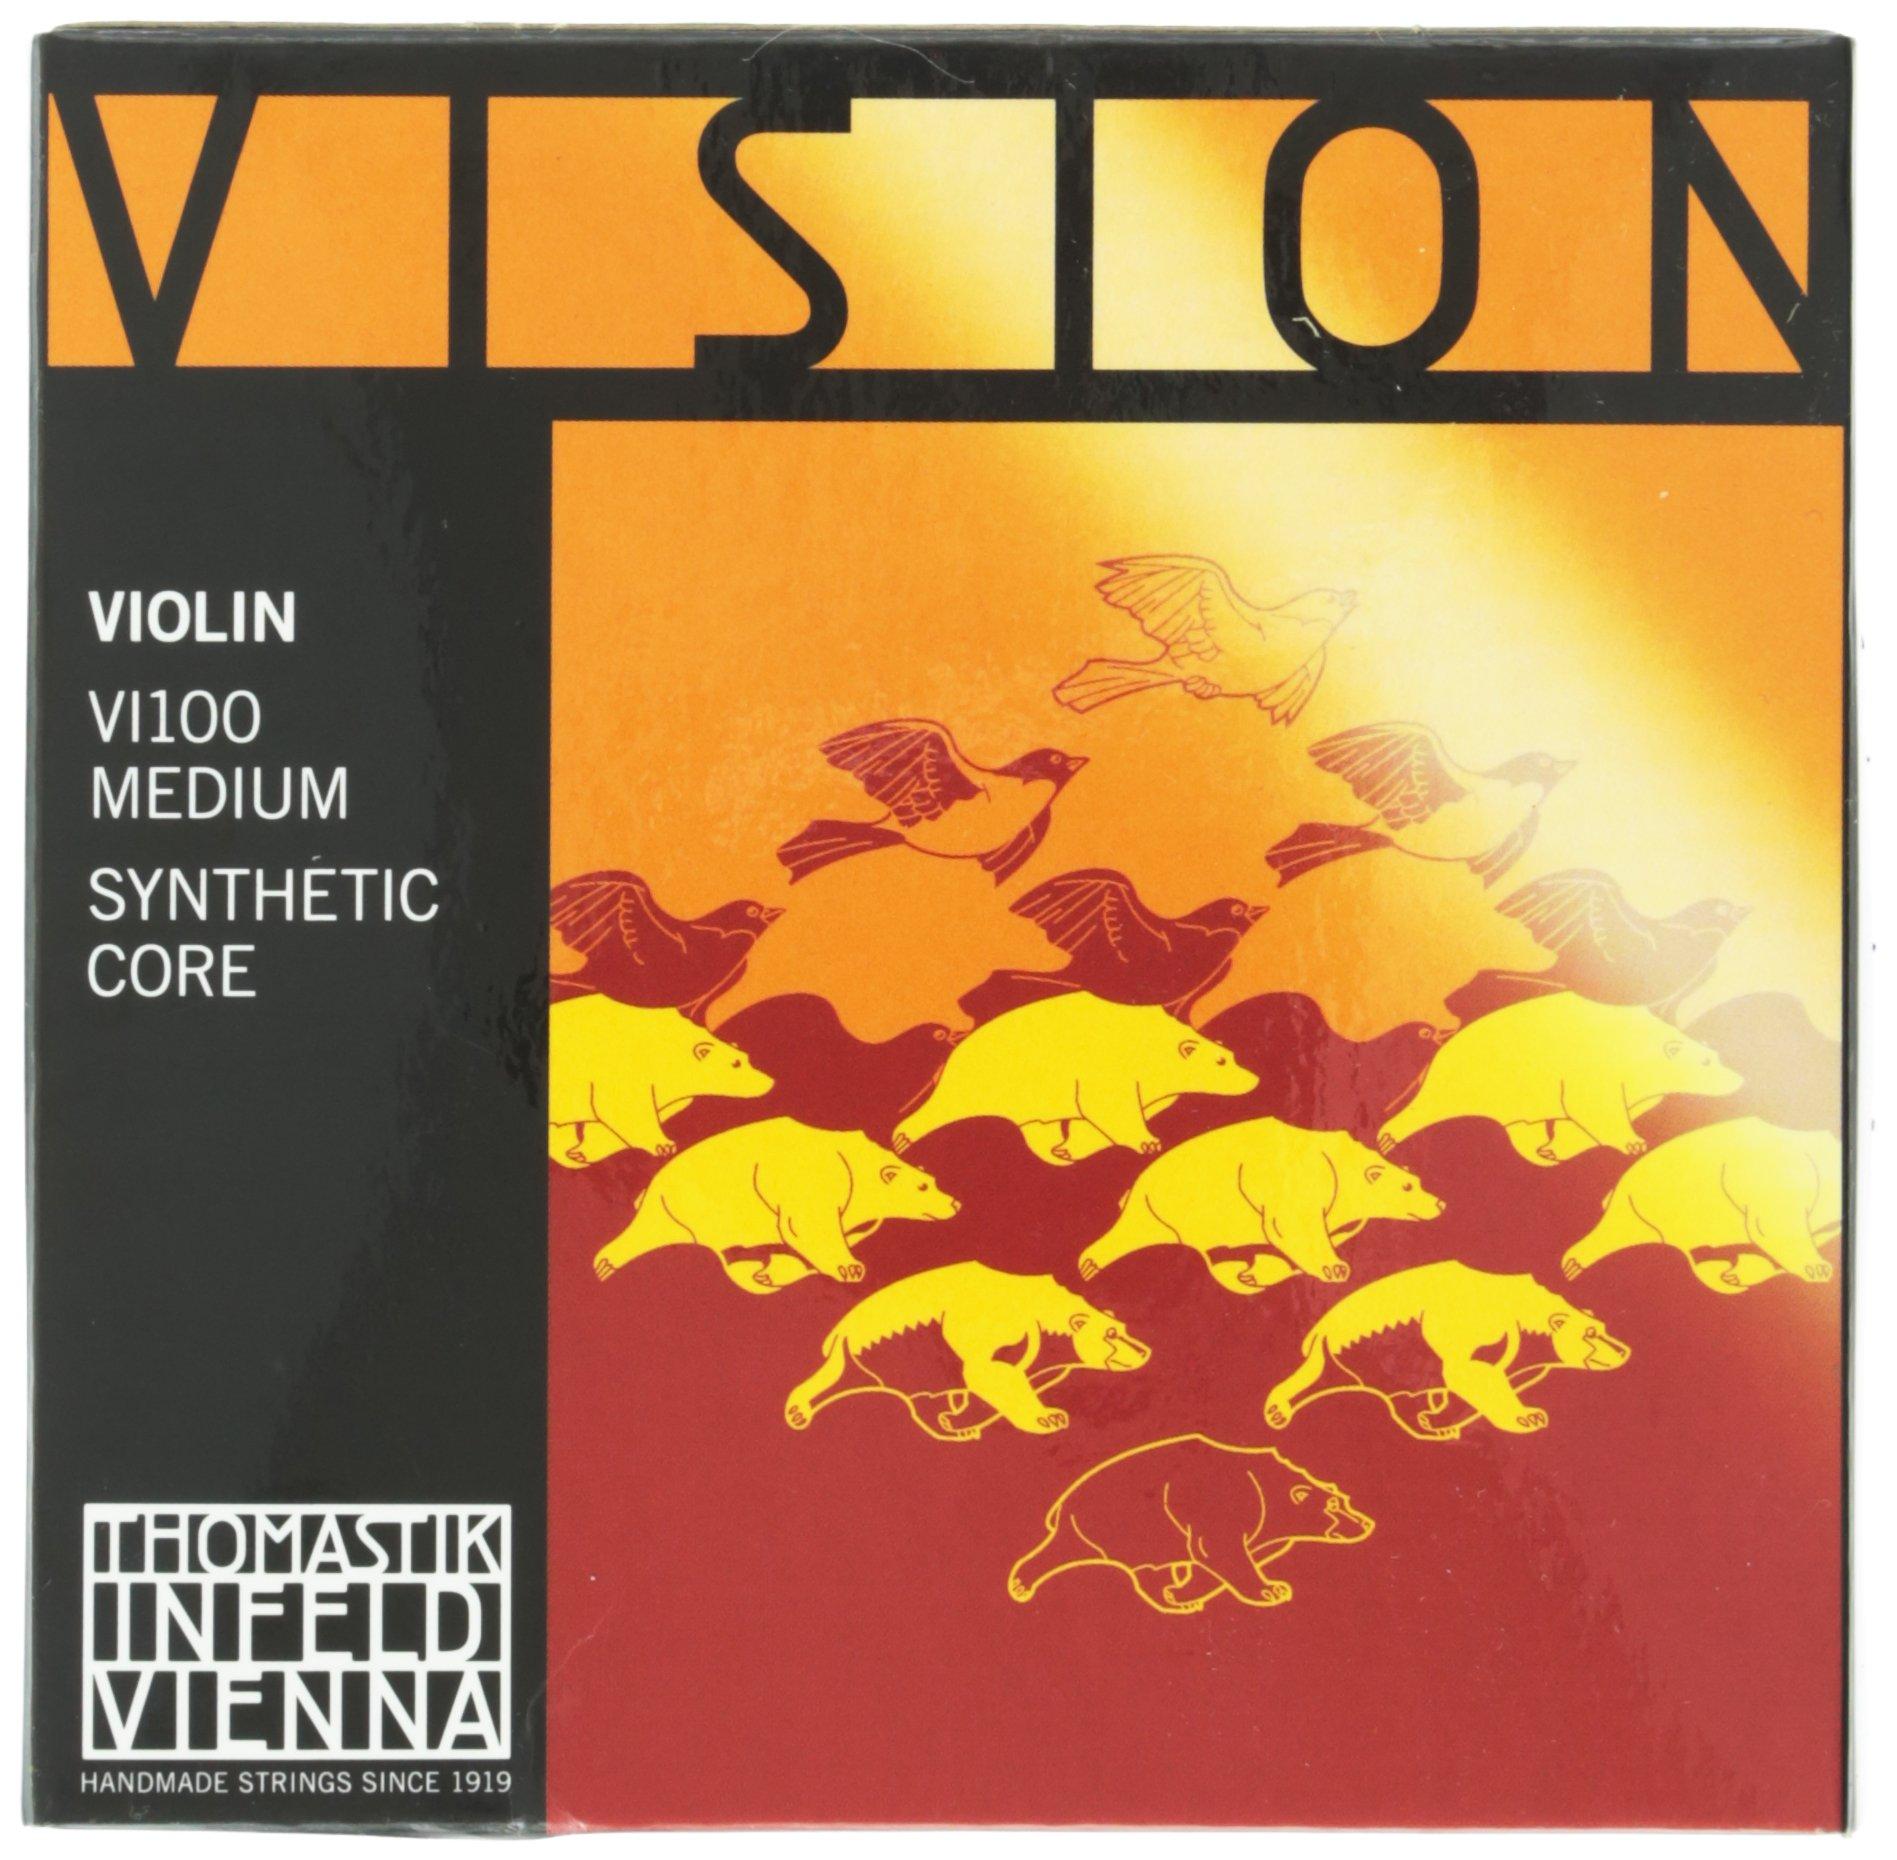 Thomastik-Infeld VI100 Vision Violin Strings, Complete Set, 4/4 Size